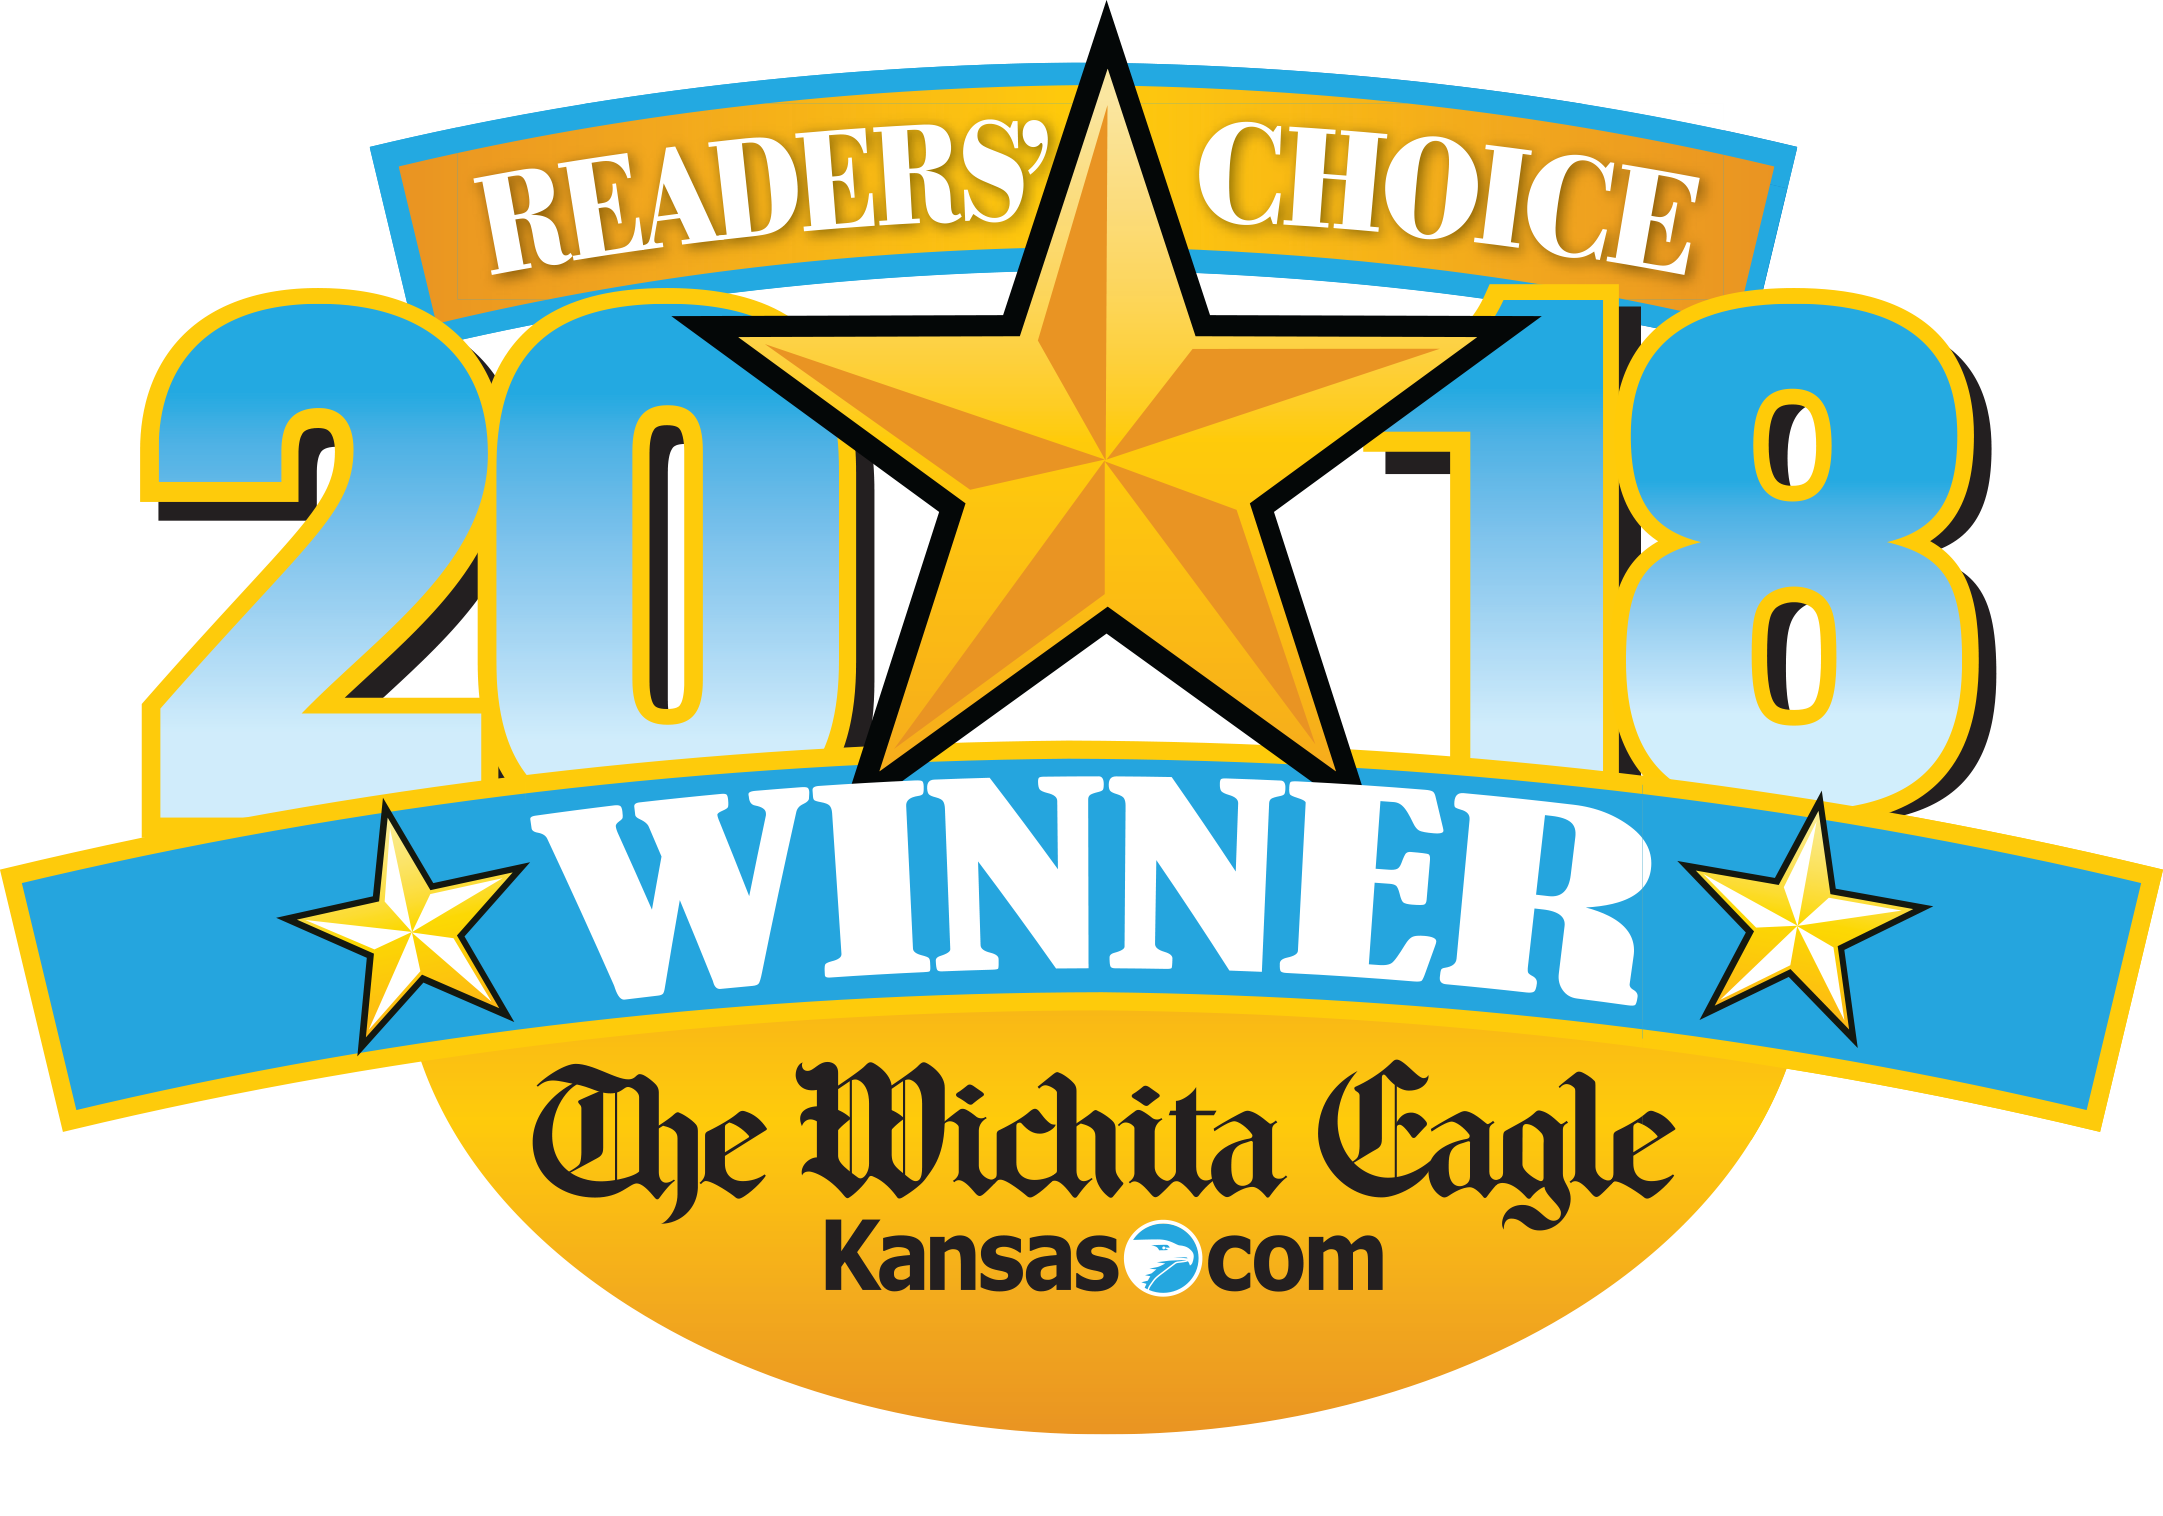 Readers' Choice 2018 winner from The Wichita Eagle